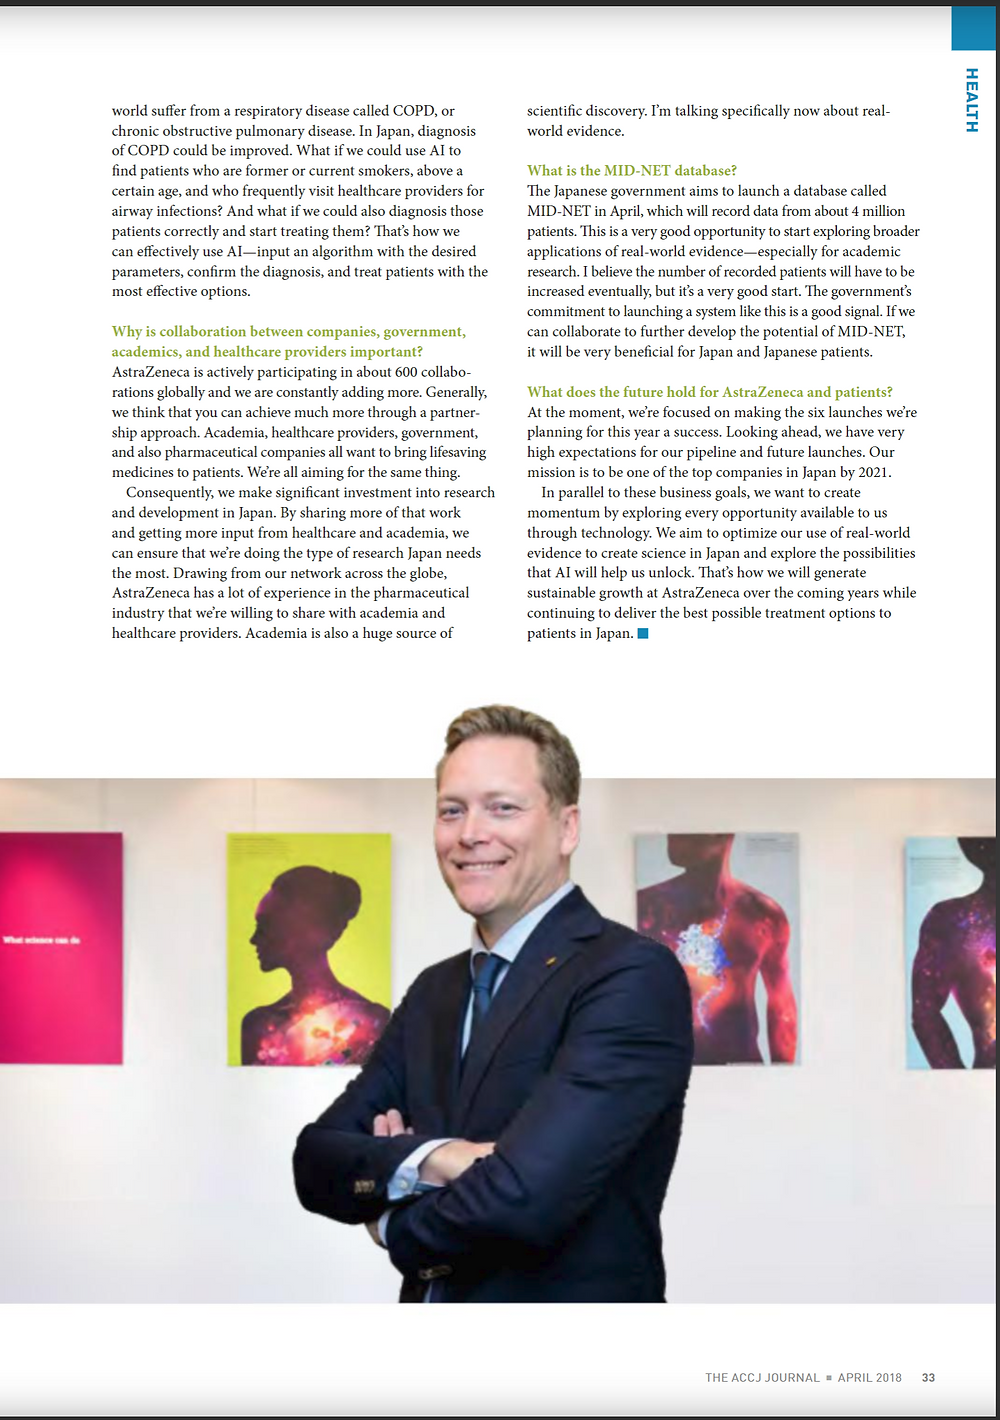 APRIL 2018 HEALTH  Advance Medicine AstraZeneca Japan President Stefan Woxström shares his healthcare vision  By C Bryan Jones  Biopharmaceutical company AstraZeneca says science is at the heart of everything they do. With an unprecedented six new treatments expected to come to market in 2018, the company has life-changing breakthroughs in store for patients in Japan. Guiding efforts here is Stefan Woxström, who relocated in January from Sweden, where he headed up the company's operations in the Nordic and Baltic countries. The ACCJ Journal sat down with Woxström to find out more about AstraZeneca's approach to healthcare and why 2018 is a milestone year.  https://journal.accj.or.jp/advance-medicine/   The ACCJ - 在日米国商工会議所  http://www.accj.or.jp